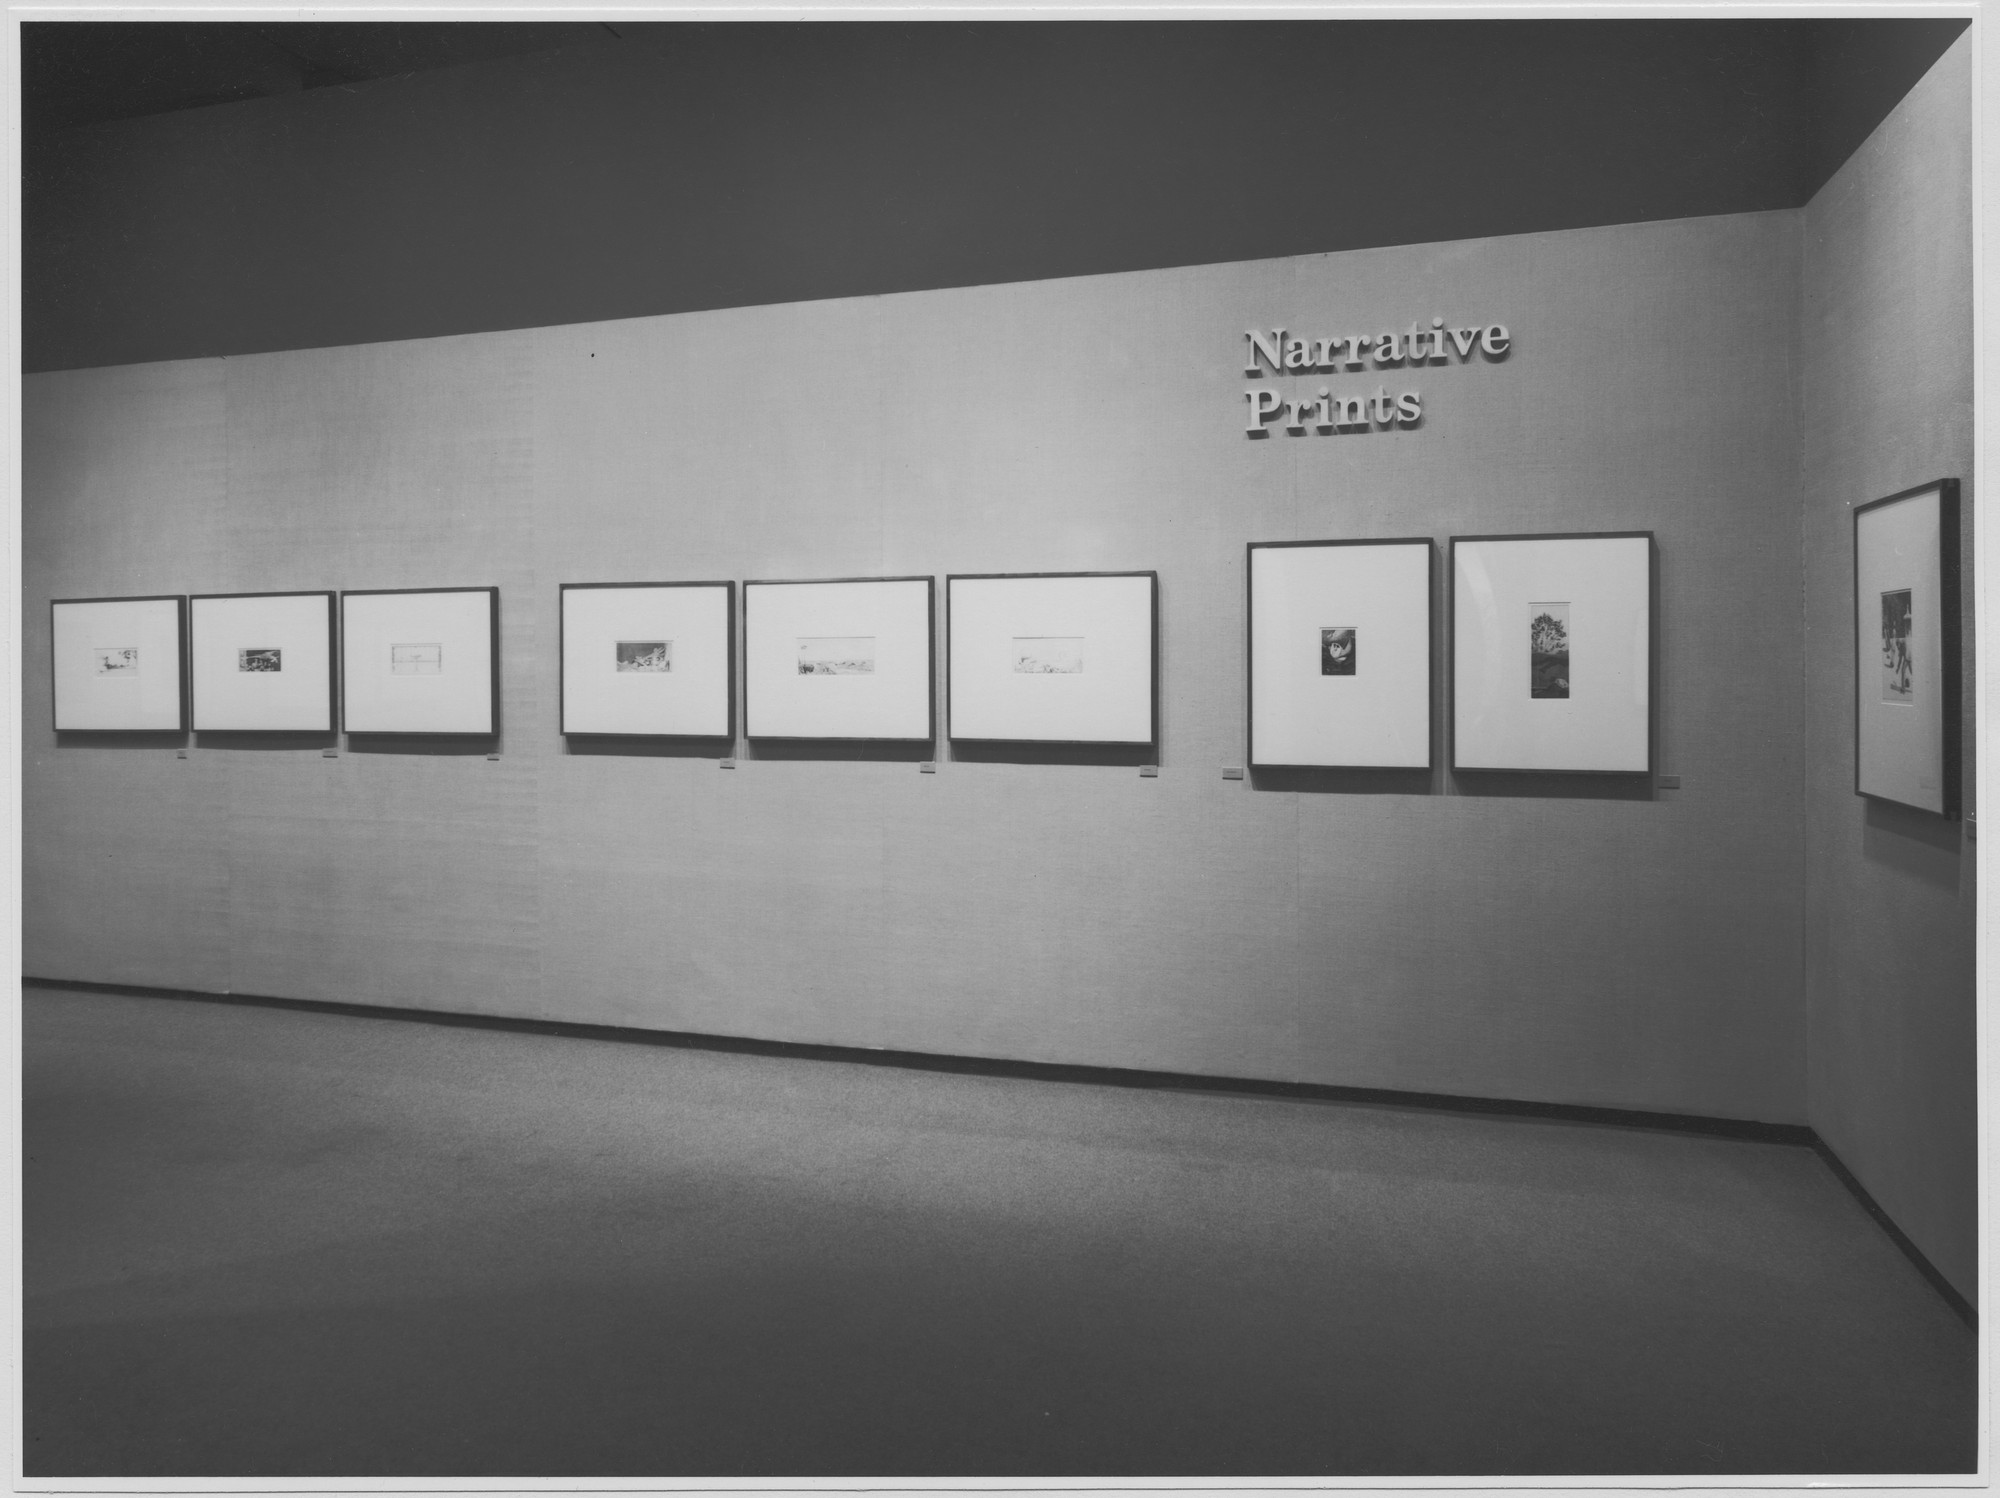 "Installation view of the exhibition, ""Narrative Prints."" May 14, 1976–August 8, 1976. Photographic Archive. The Museum of Modern Art Archives, New York. IN1131.1. Photograph by David Allison."